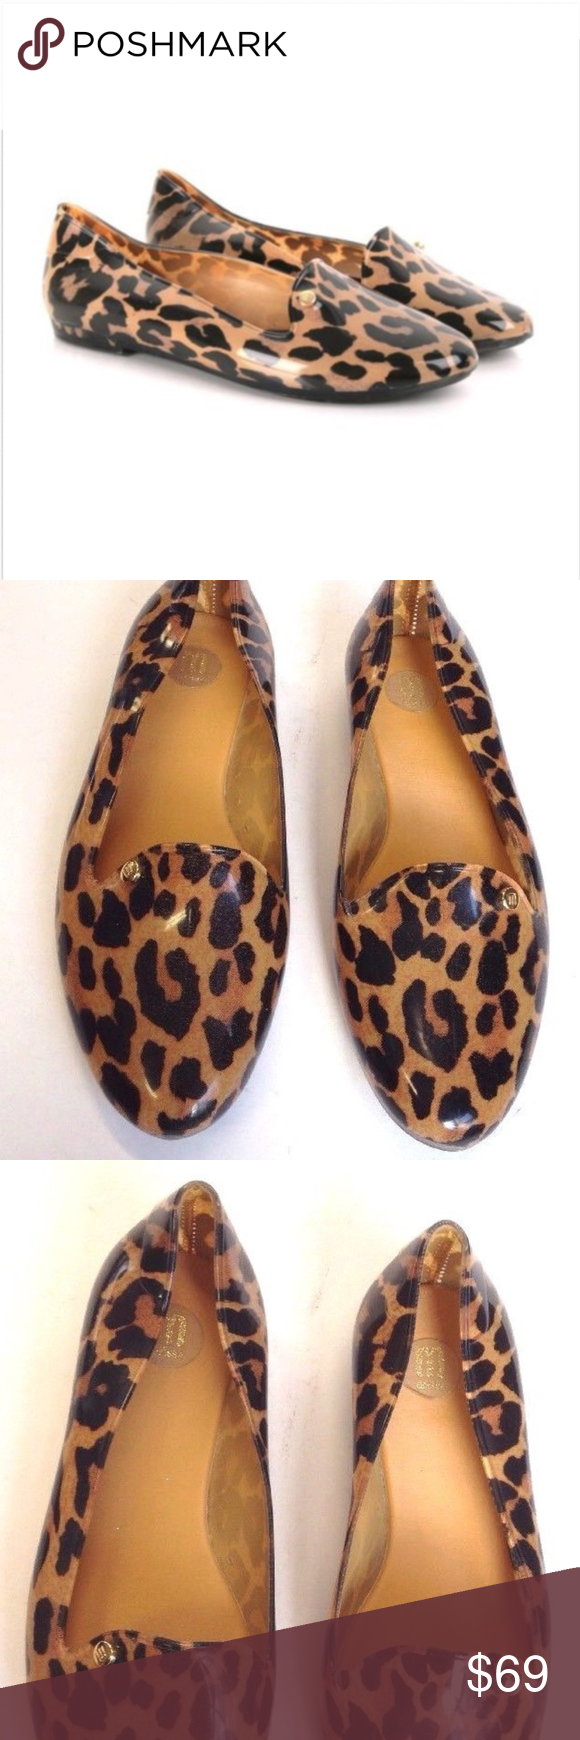 93a9fee6877 MELISSA VIRTUE LEOPARD PRINT JELLY LOAFERS animal NICE PAIR OF MELISSA  VIRTUE LEOPARD PRINT JELLY LOAFERS